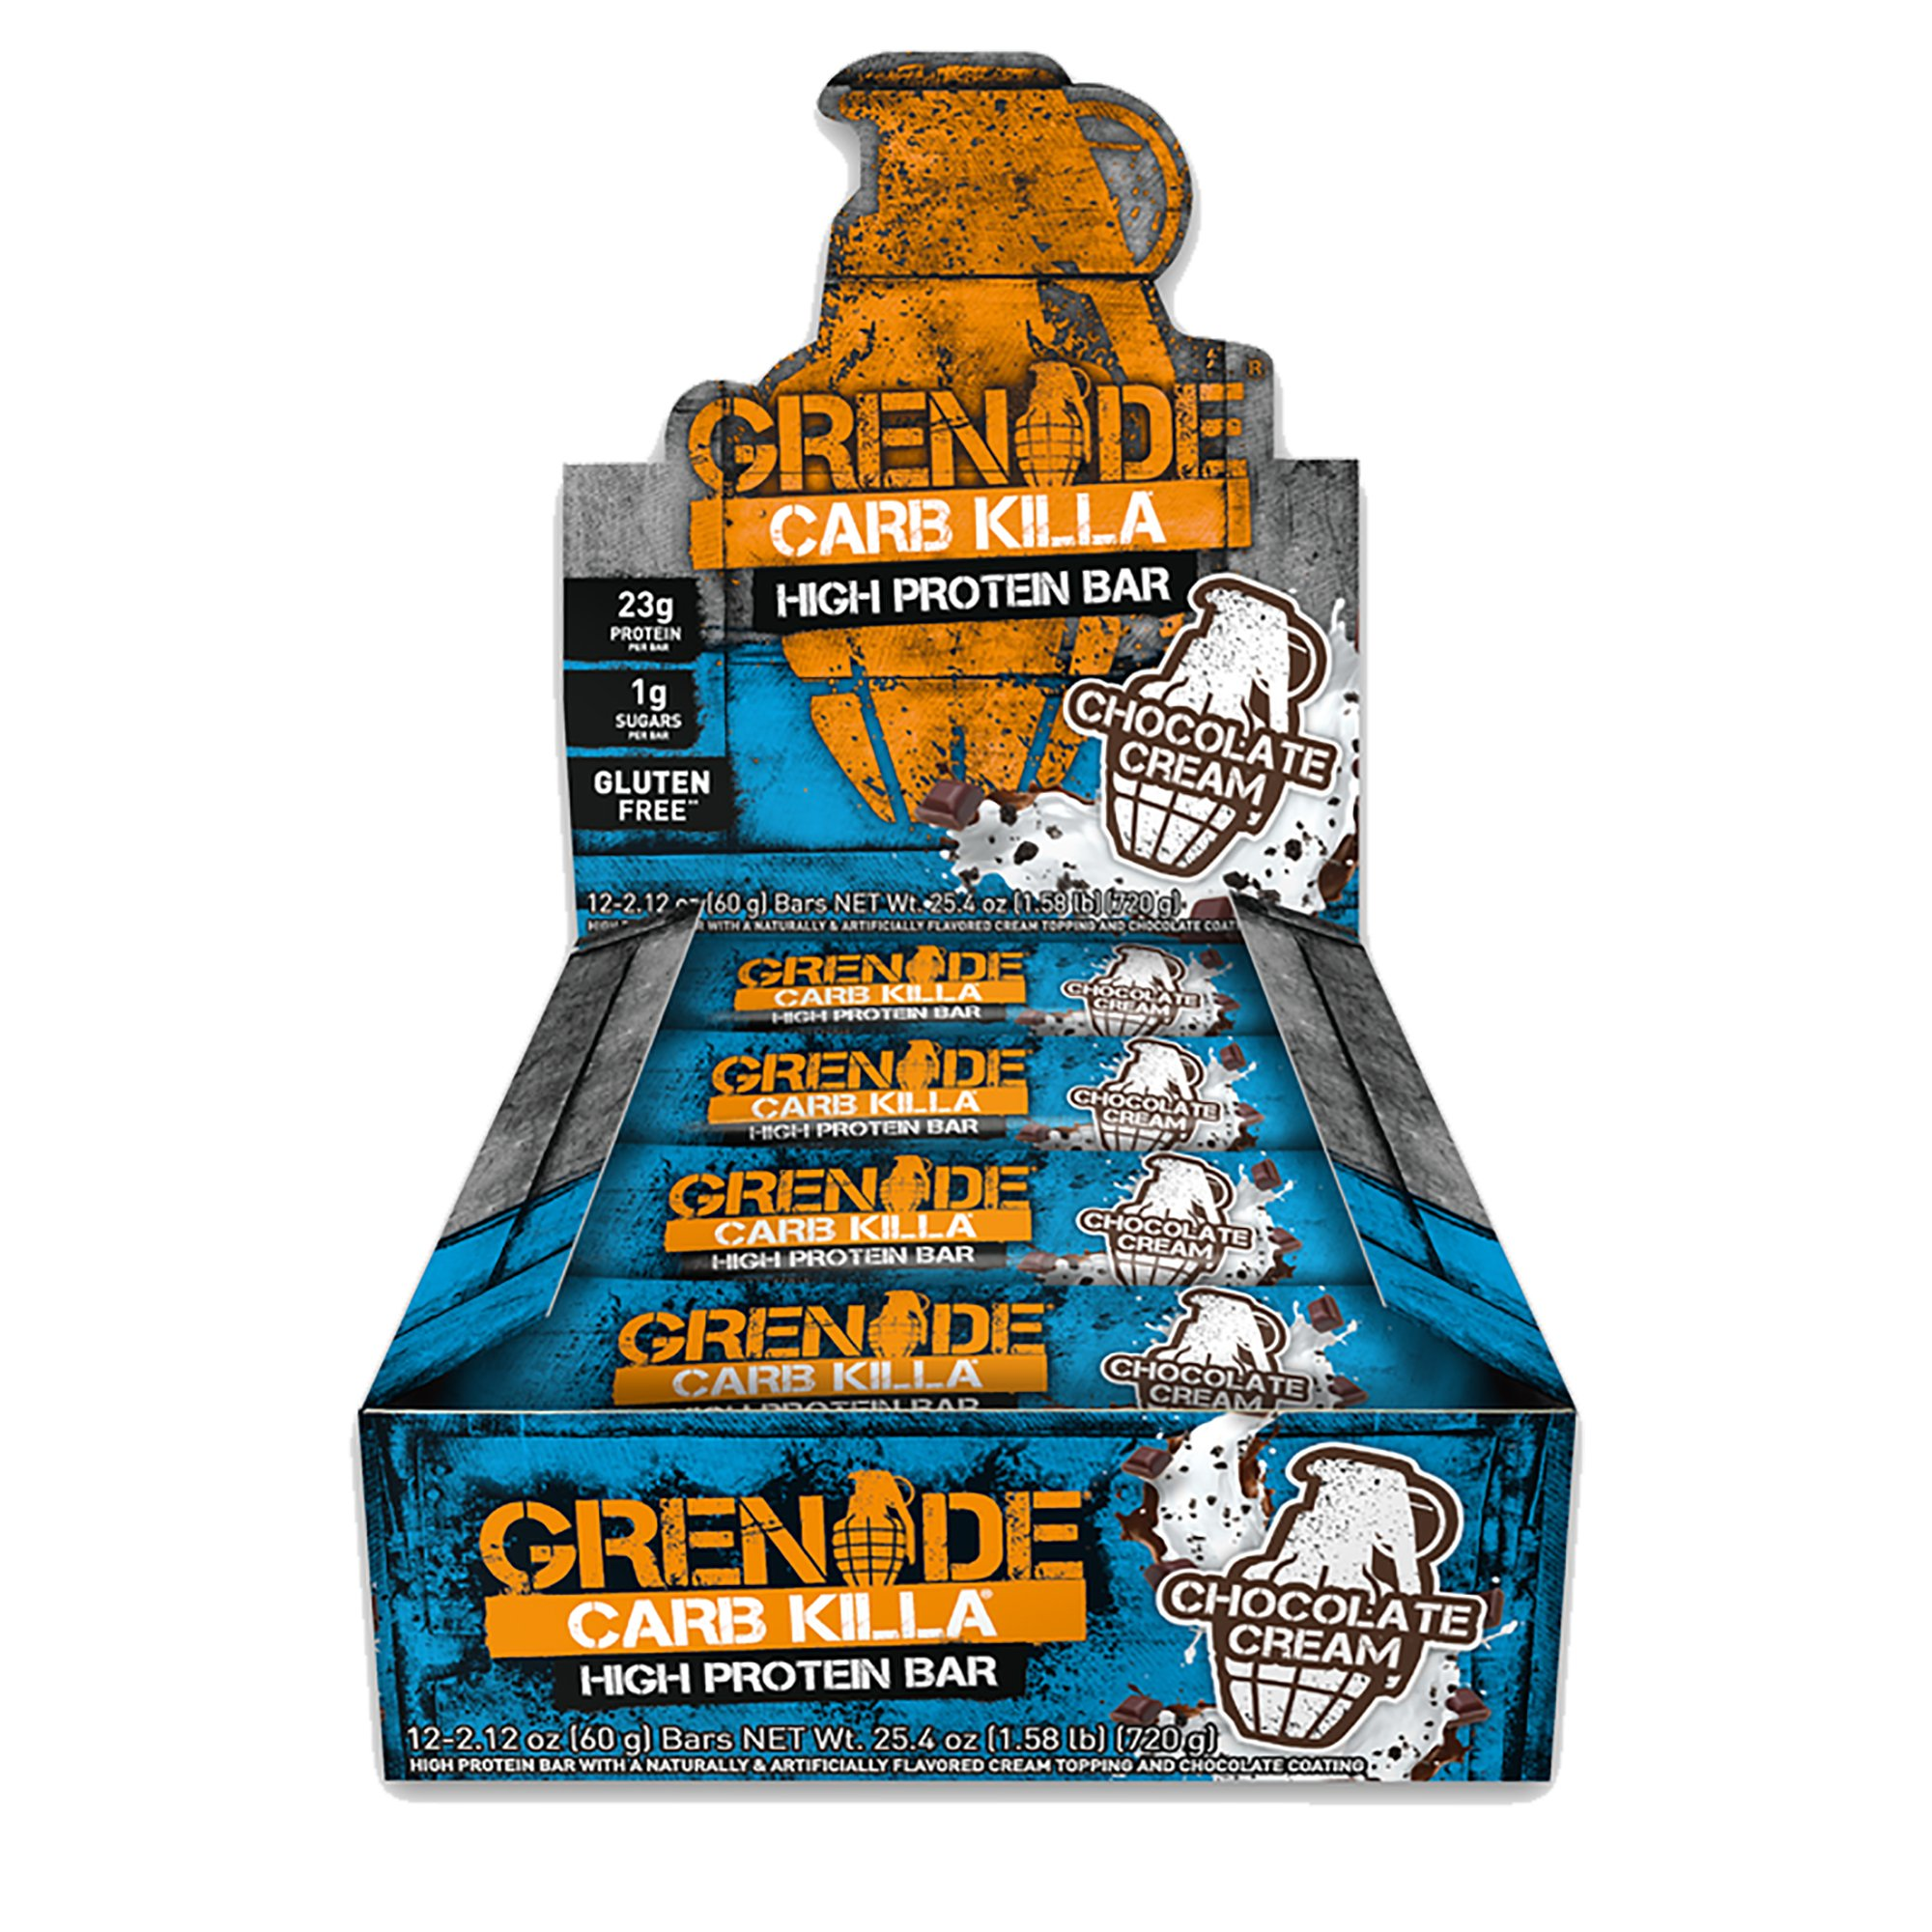 Grenade Carb Killa Protein Bar, Great Tasting High Protein and Low Carb Snack, Chocolate Cream, (Pack of 12) 2.12 oz each